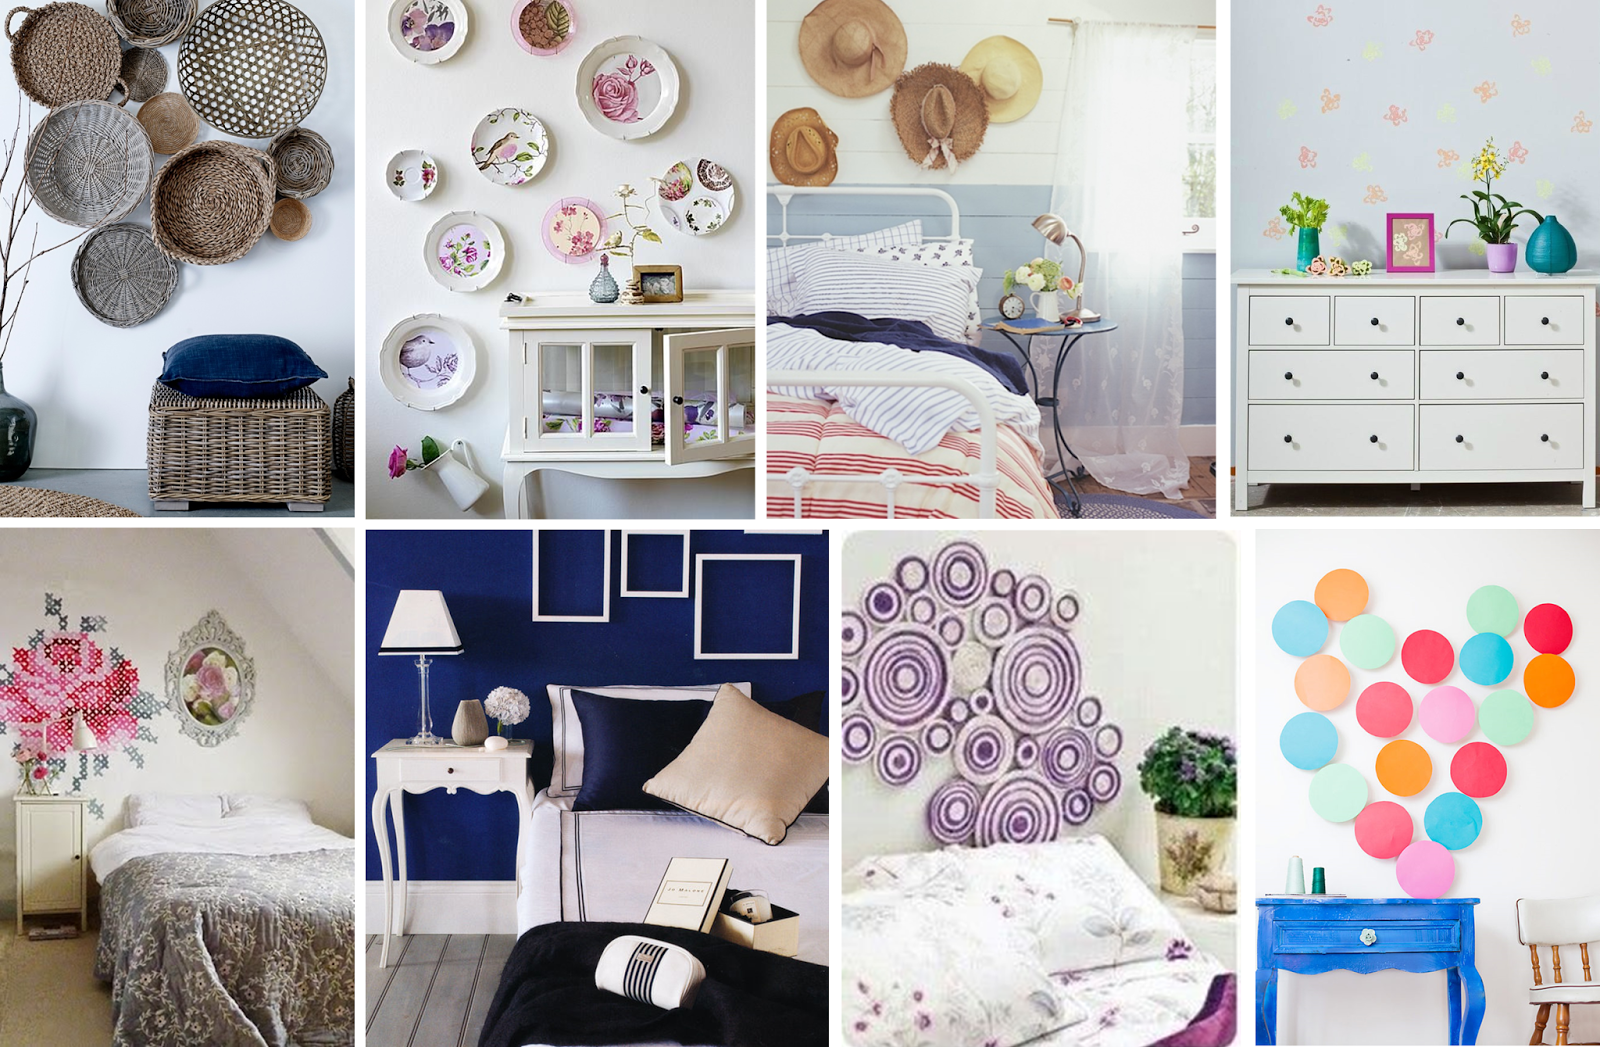 Hogarisimo marzo 2015 - Ideas originales para decorar paredes ...